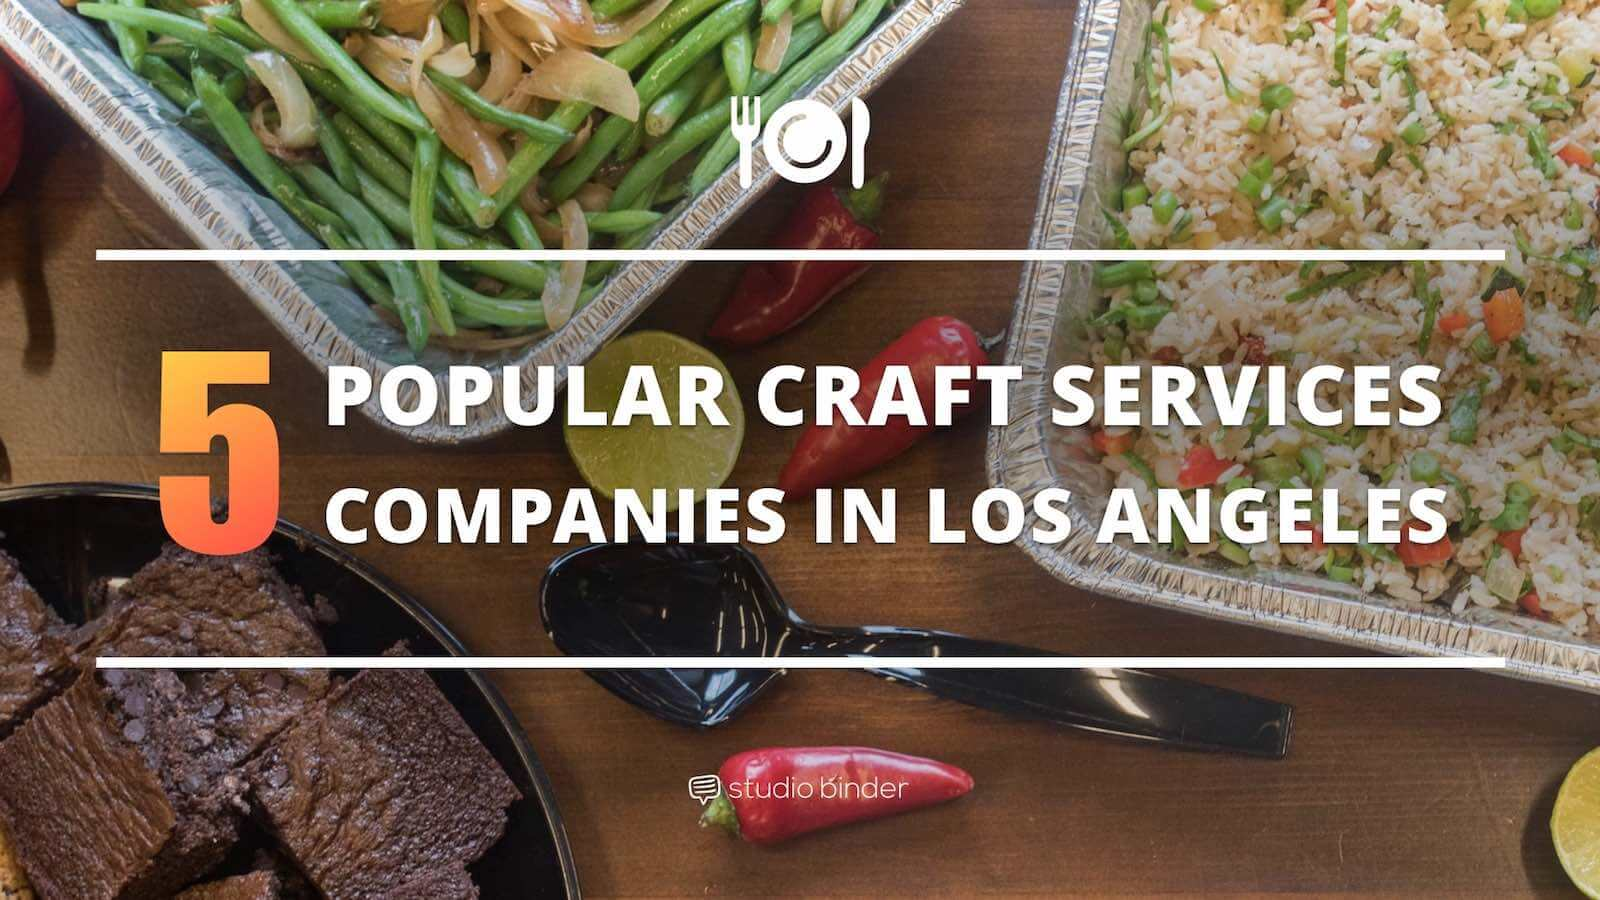 5 Popular Craft Services Companies in Los Angeles - Featured - StudioBinder - comp